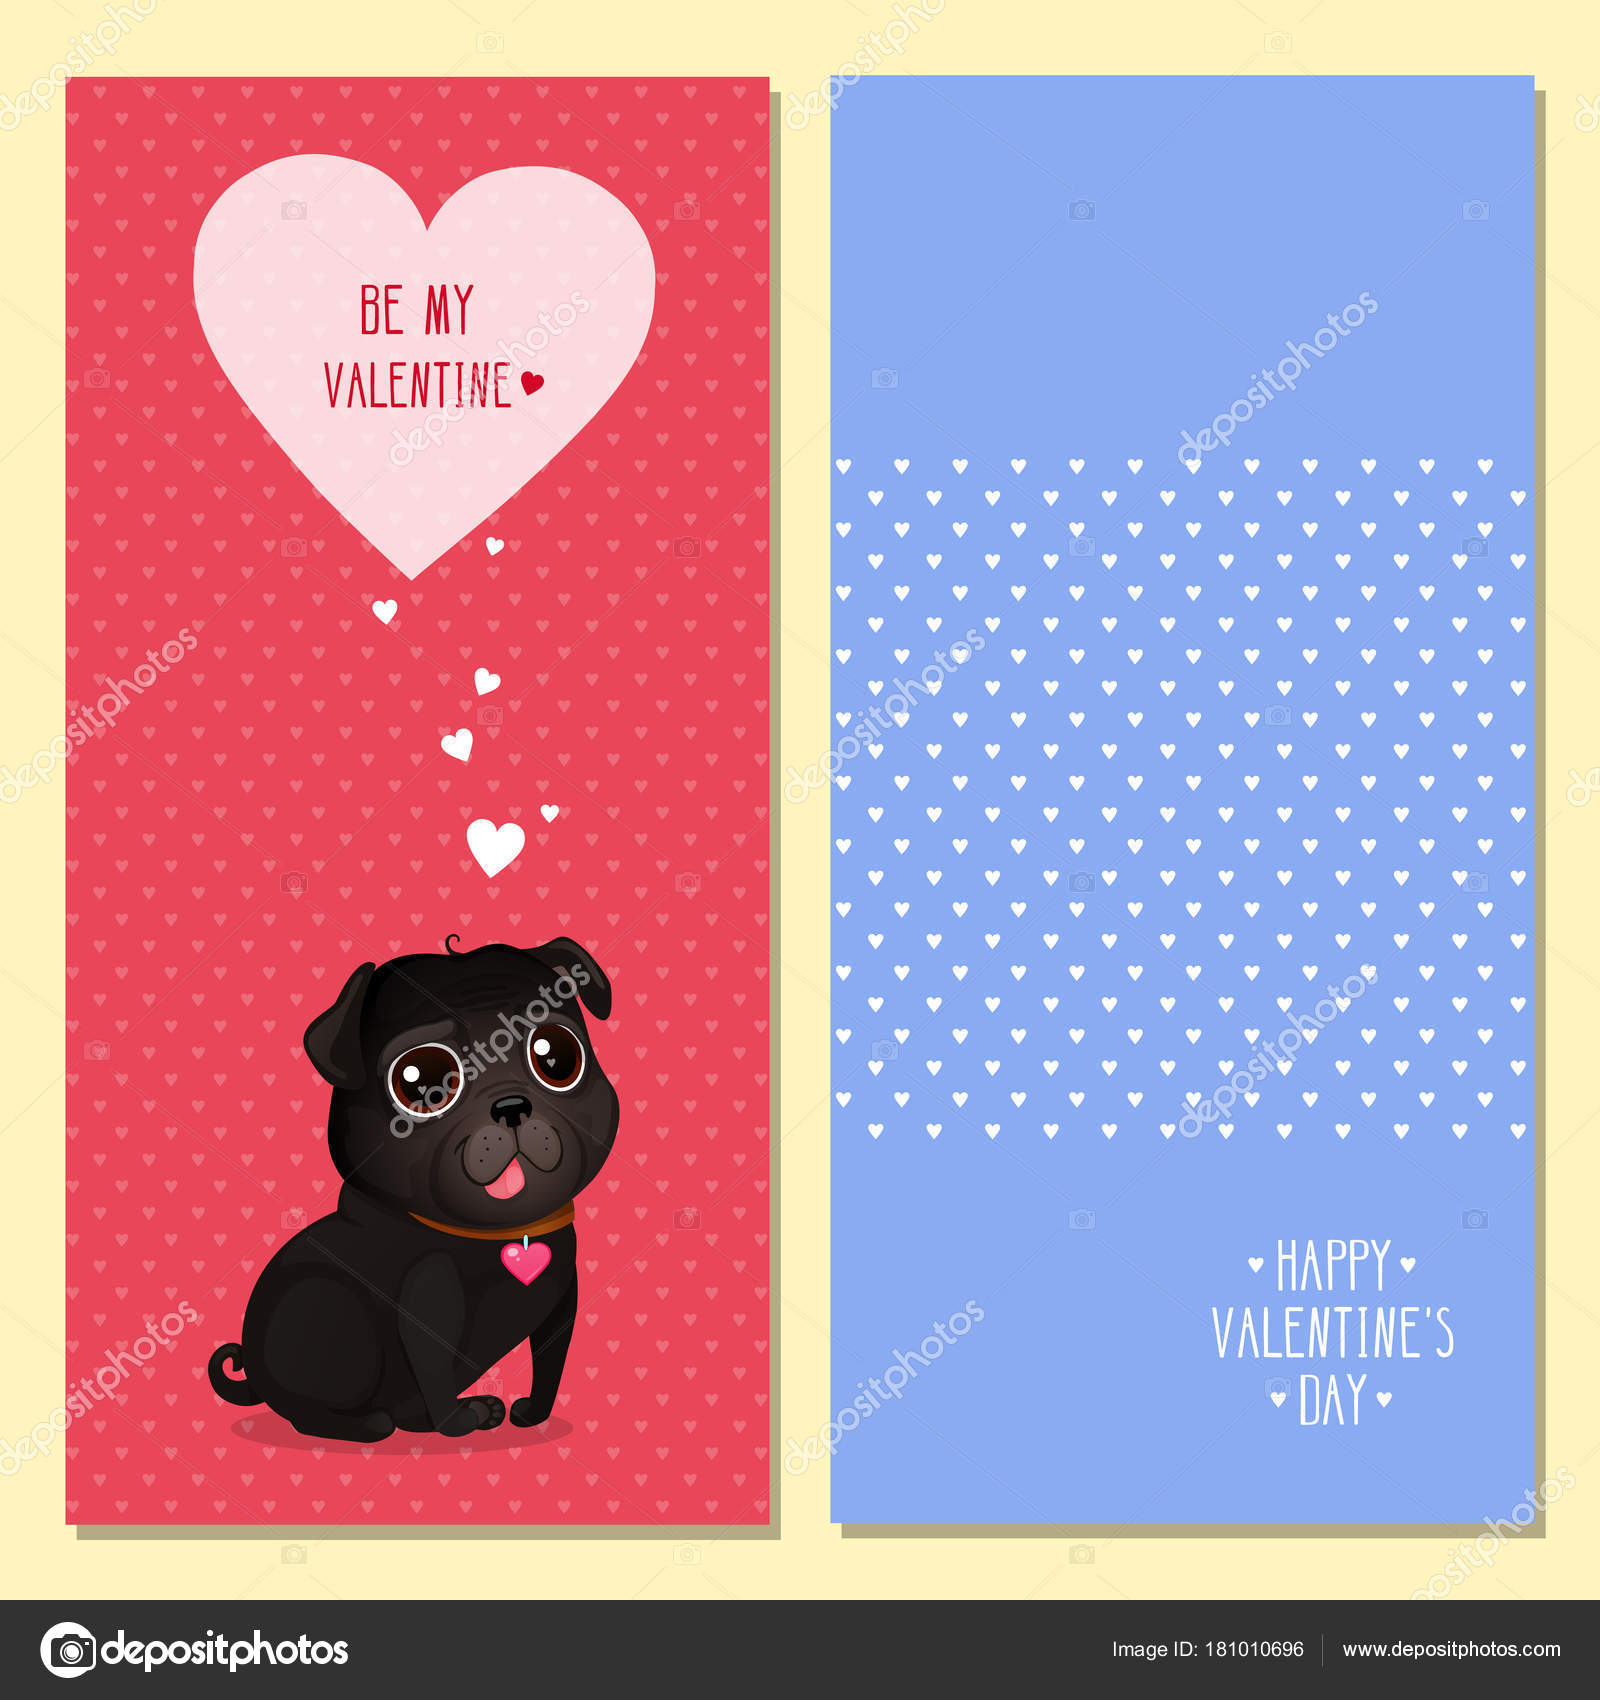 Greeting Cards Valentine Day Cute Black Pug Hearts Vector